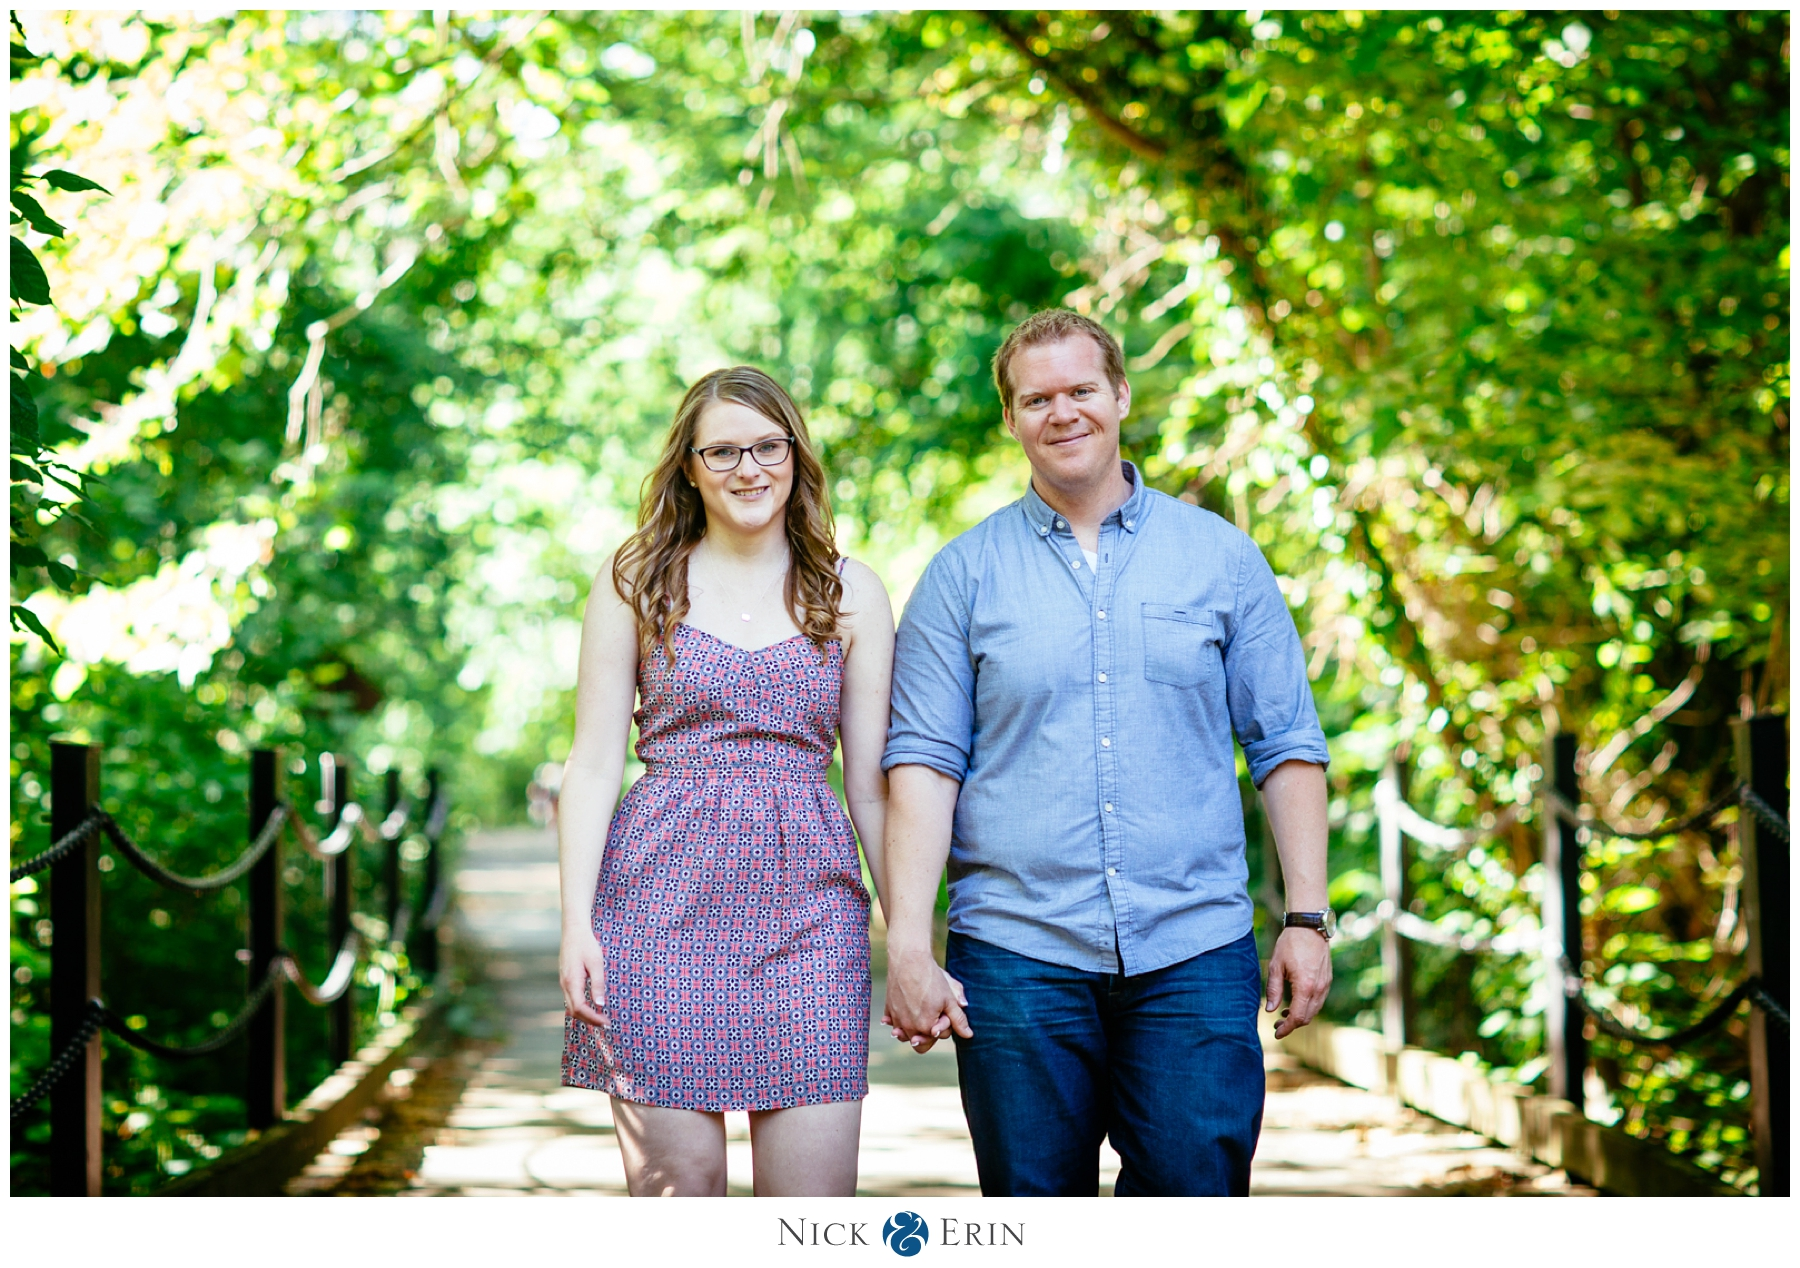 Donner_Photography_Washington DC Engagement_Katie & Chris_0016